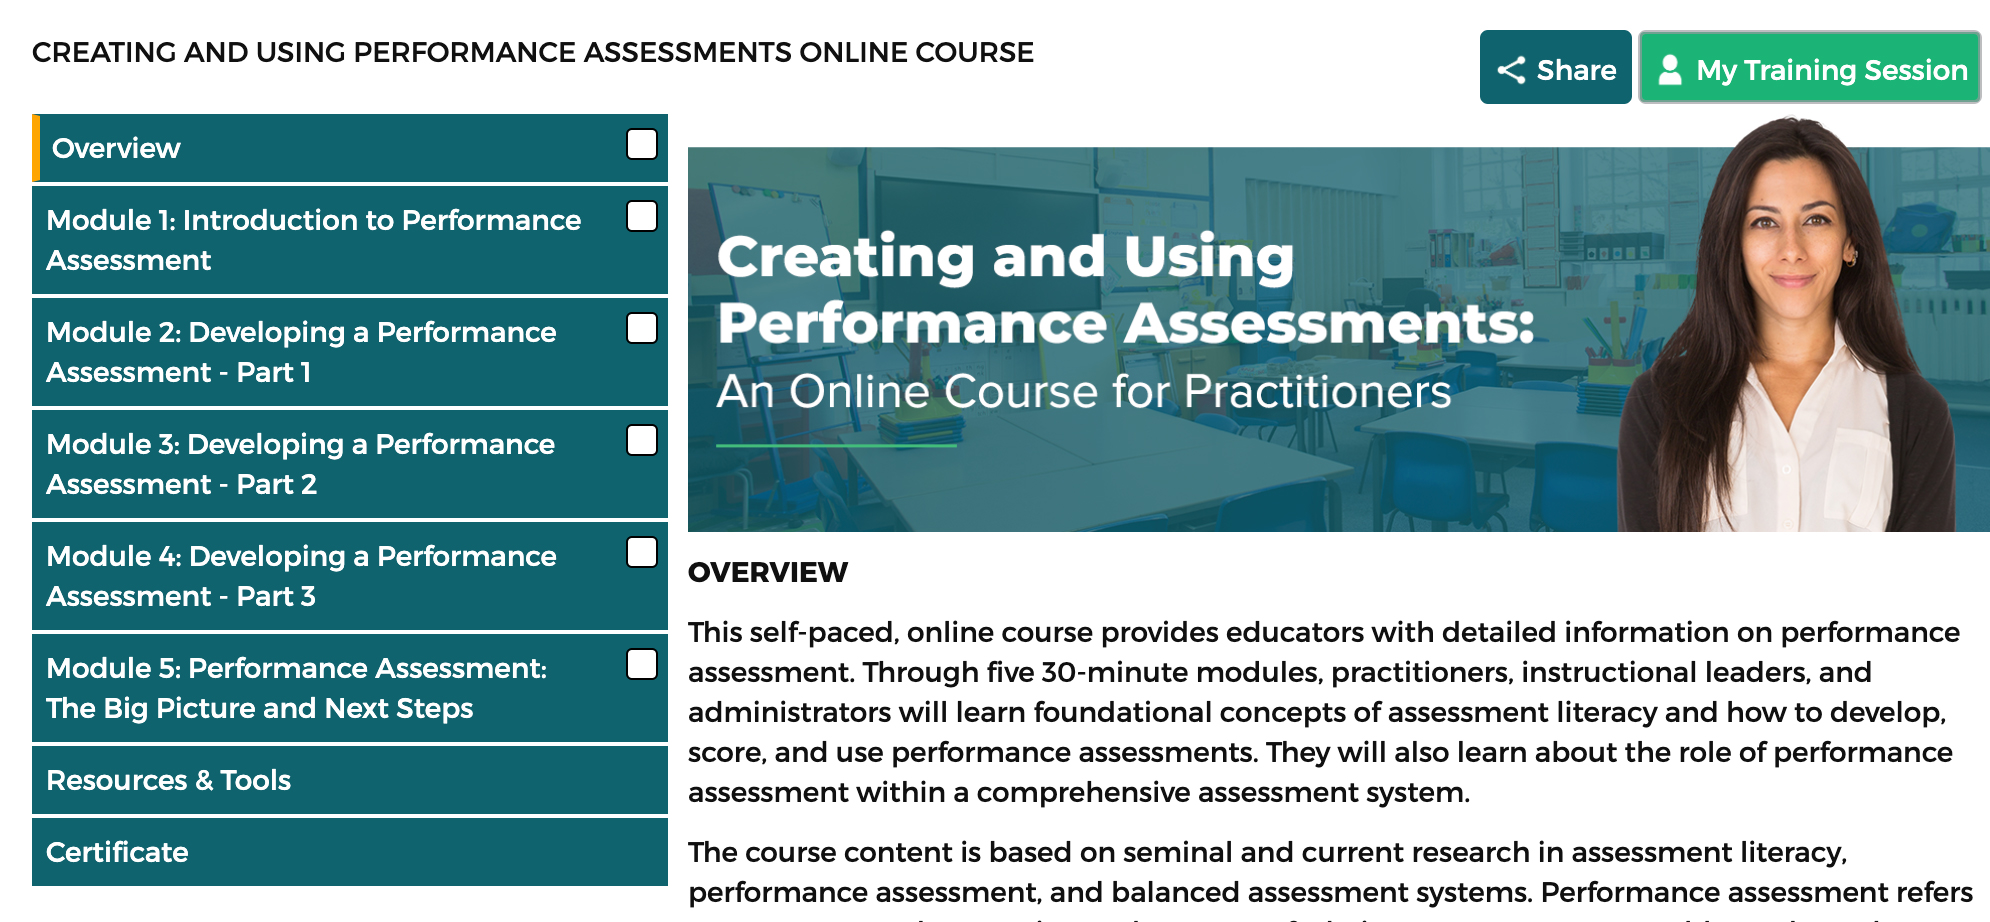 Creating and using performance aseesements: An Online course for Practitioners